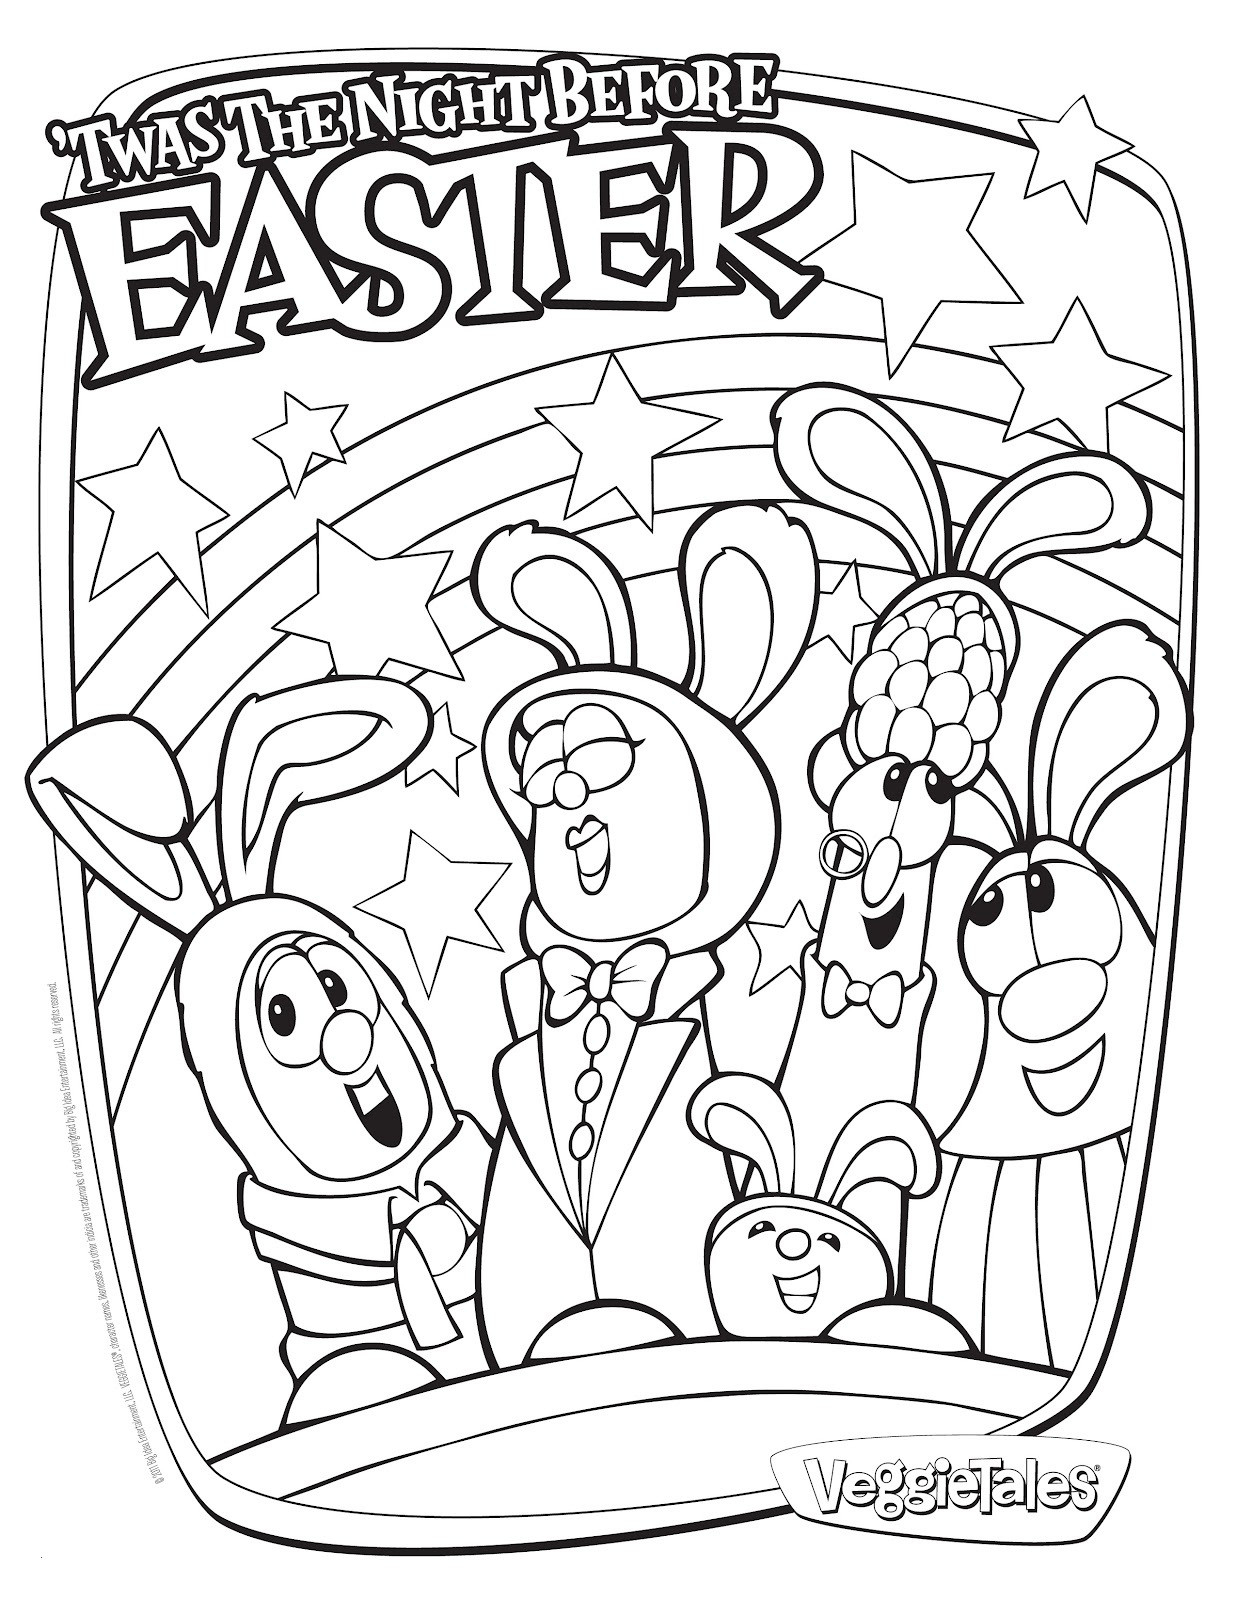 Kids christian coloring pages christian coloring pages for preschoolers awesome amazing coloring pages for children